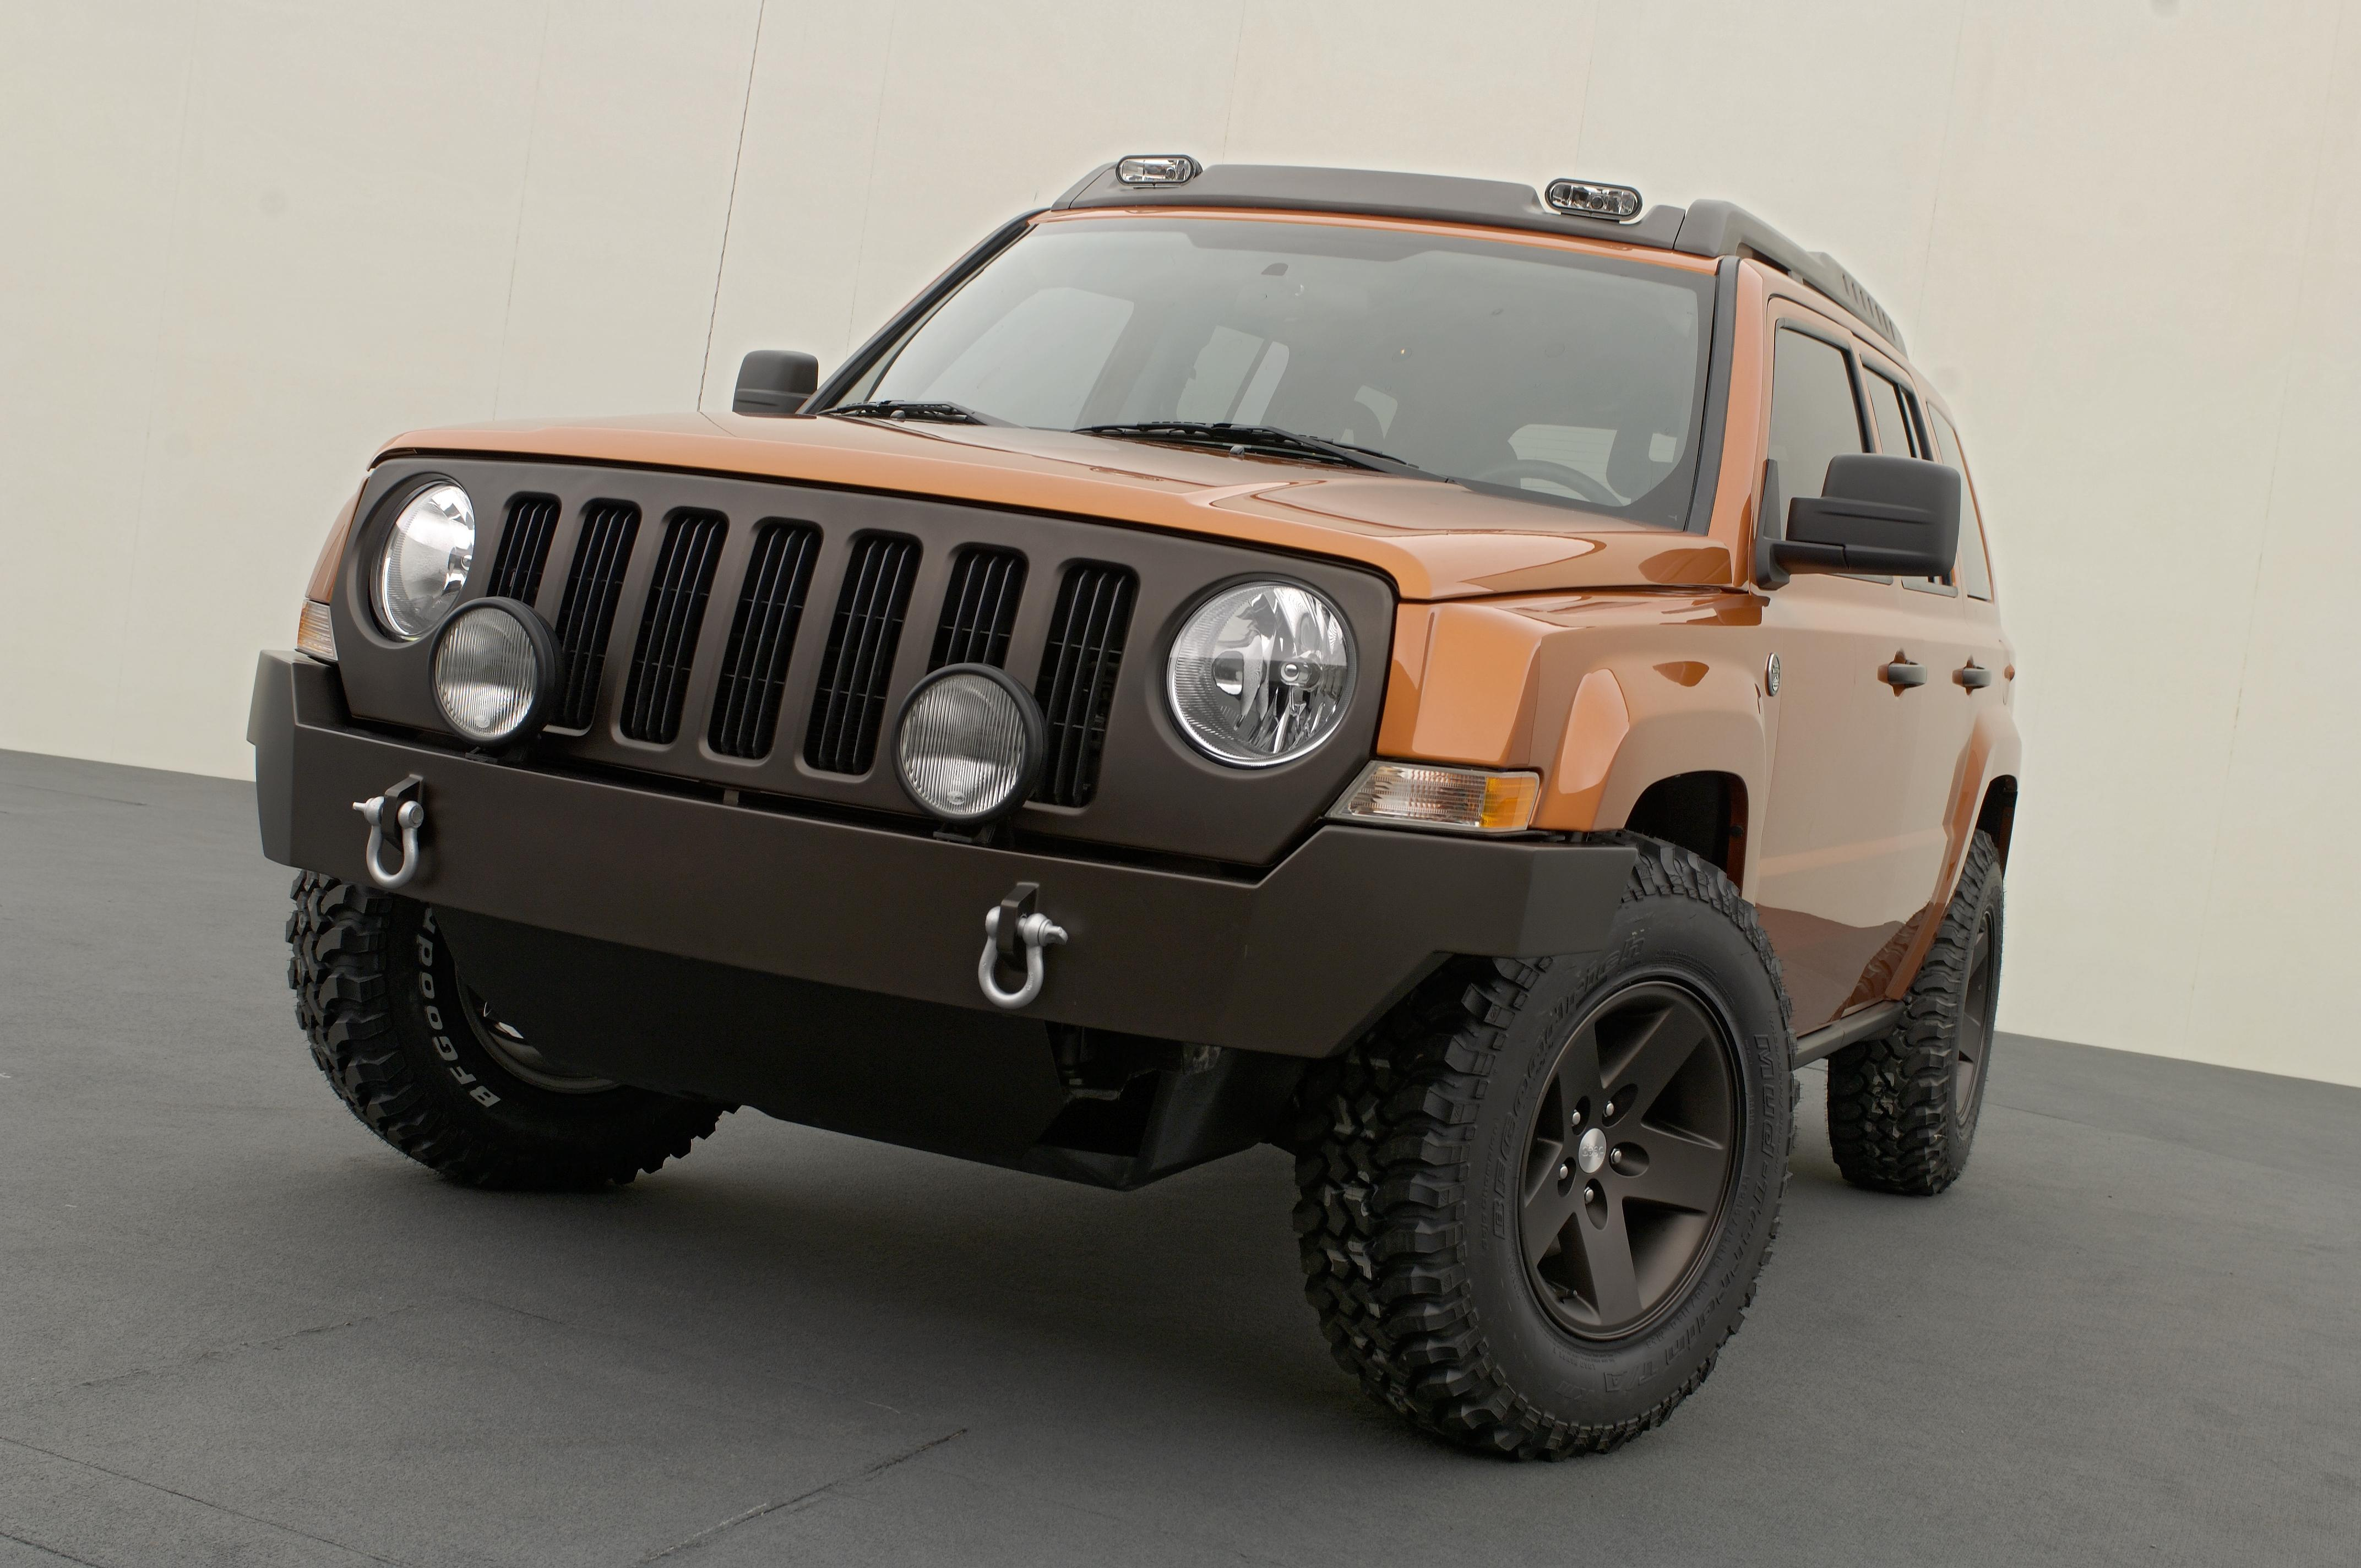 2007 jeep patriot review - gallery - top speed